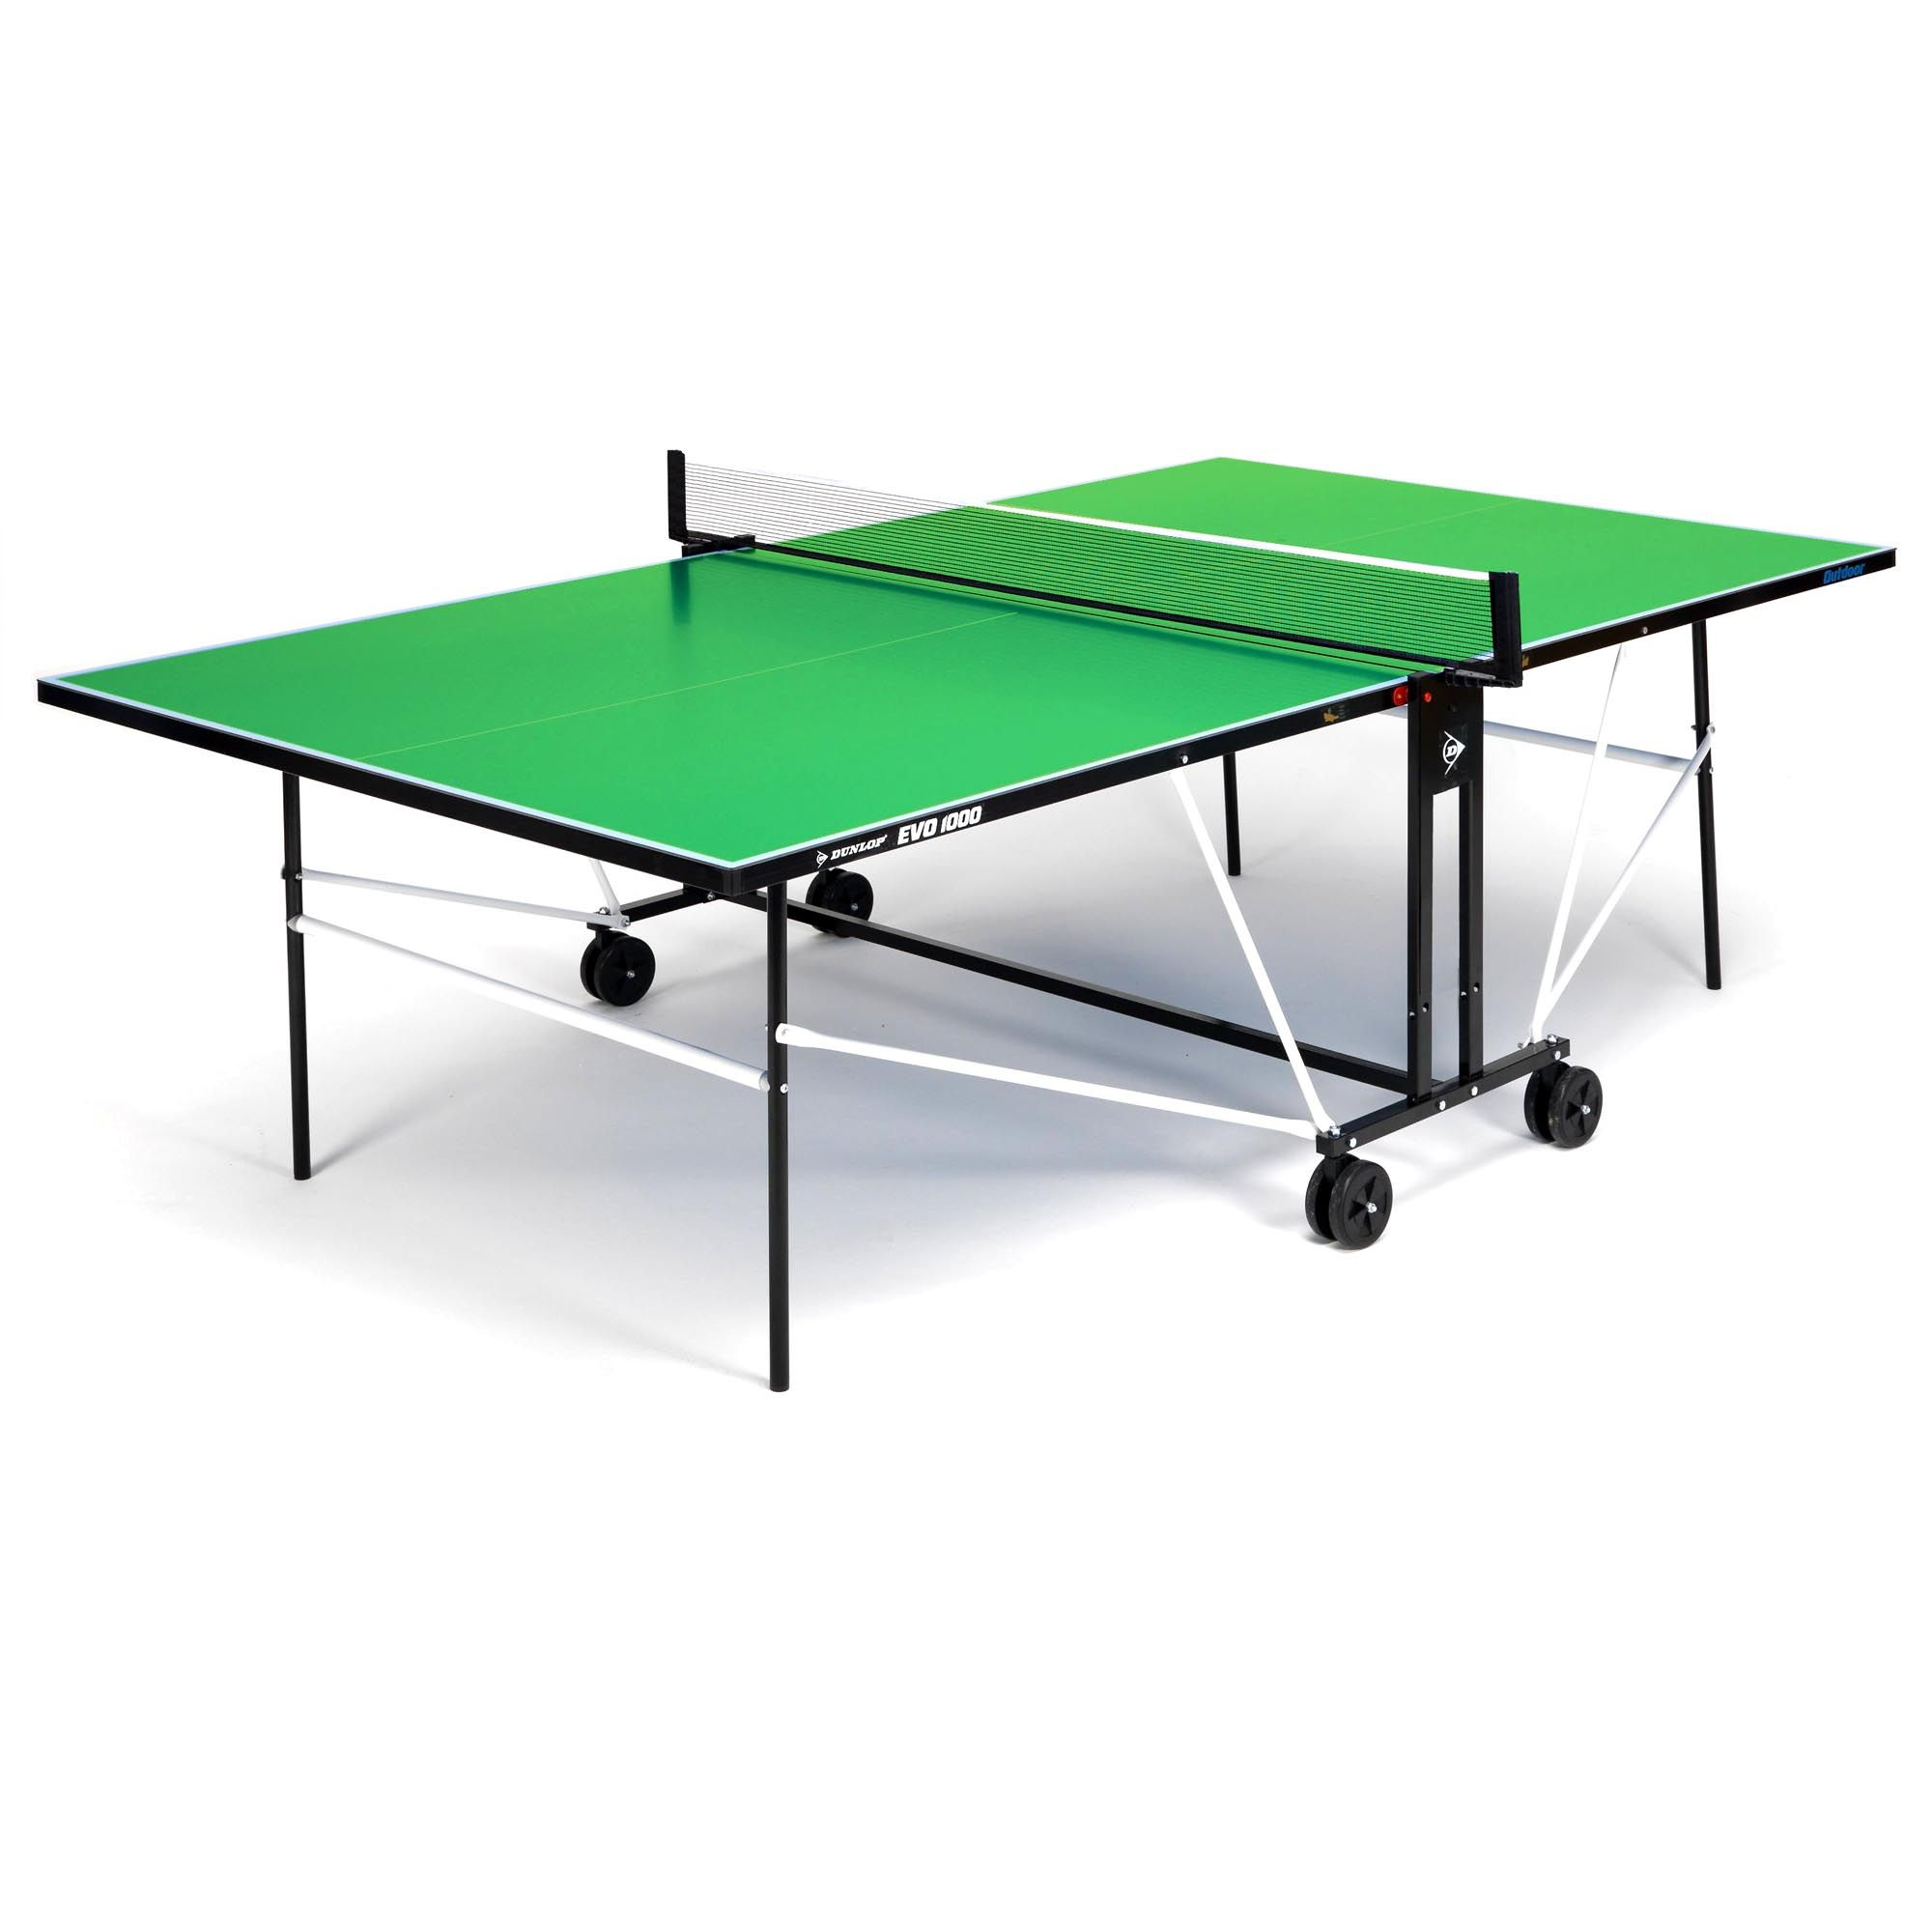 Dunlop evo 1000 outdoor table tennis table - Weatherproof table tennis table ...